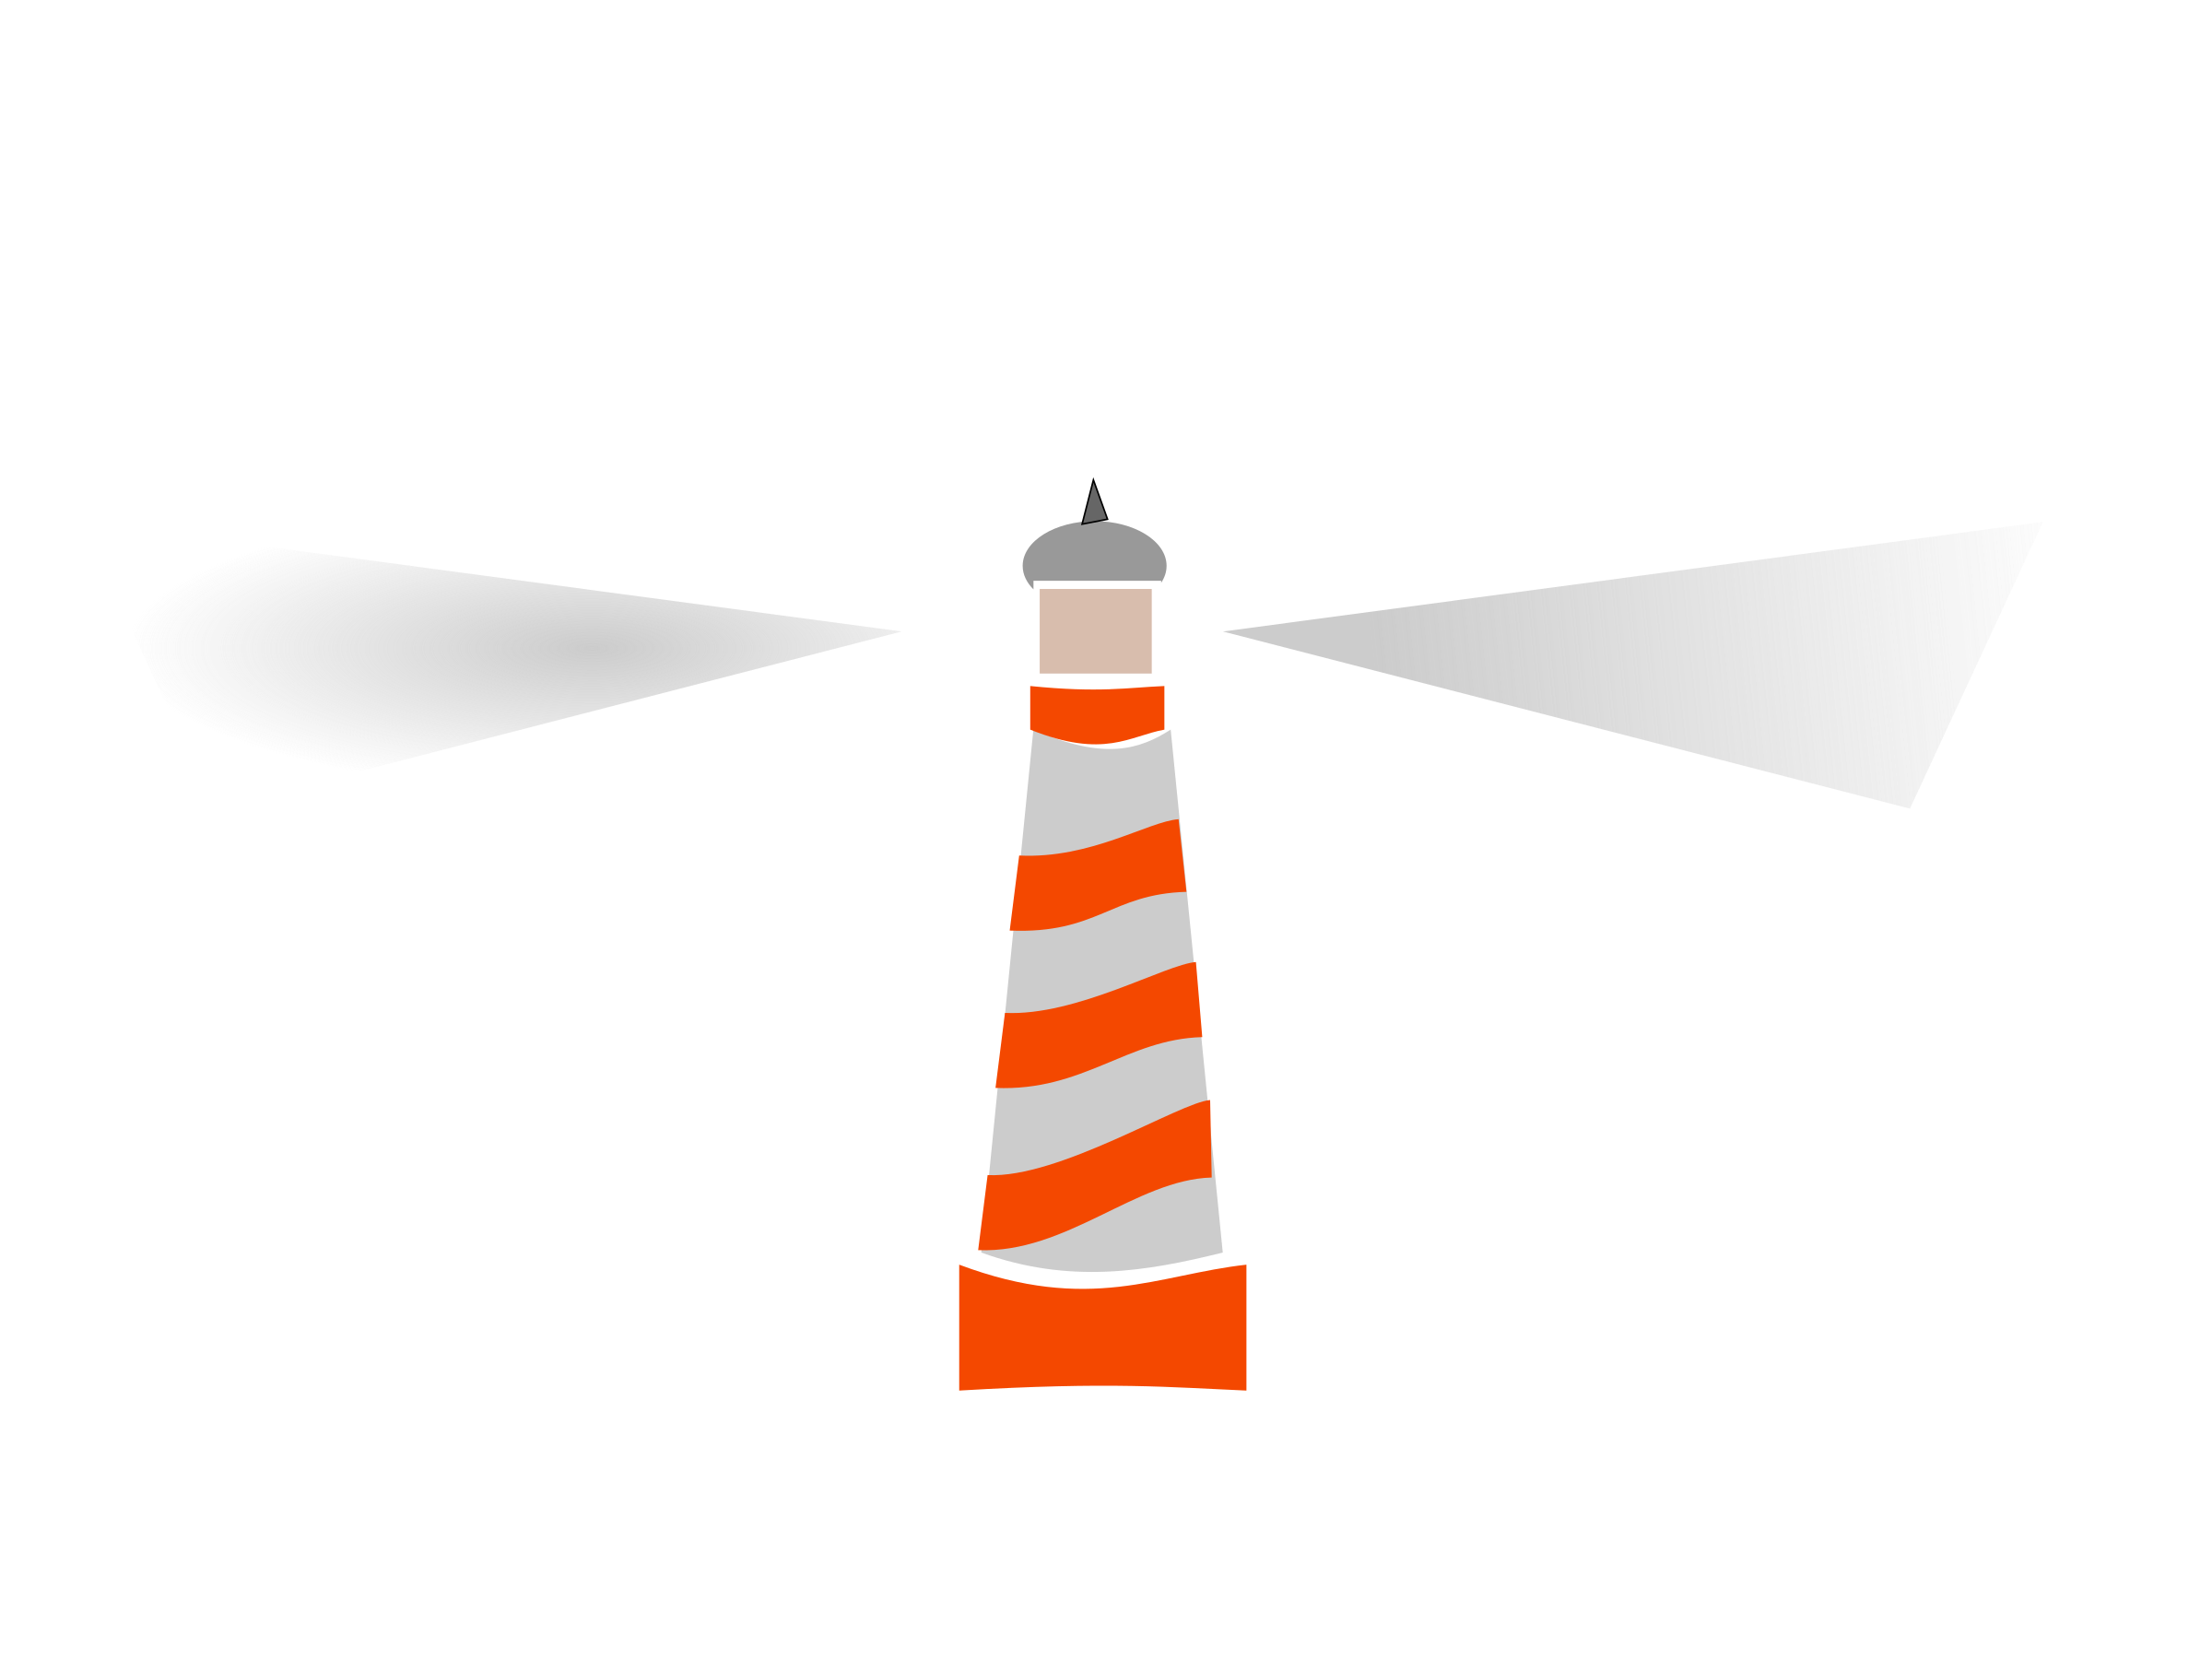 Warning clipart signs with. Light house png